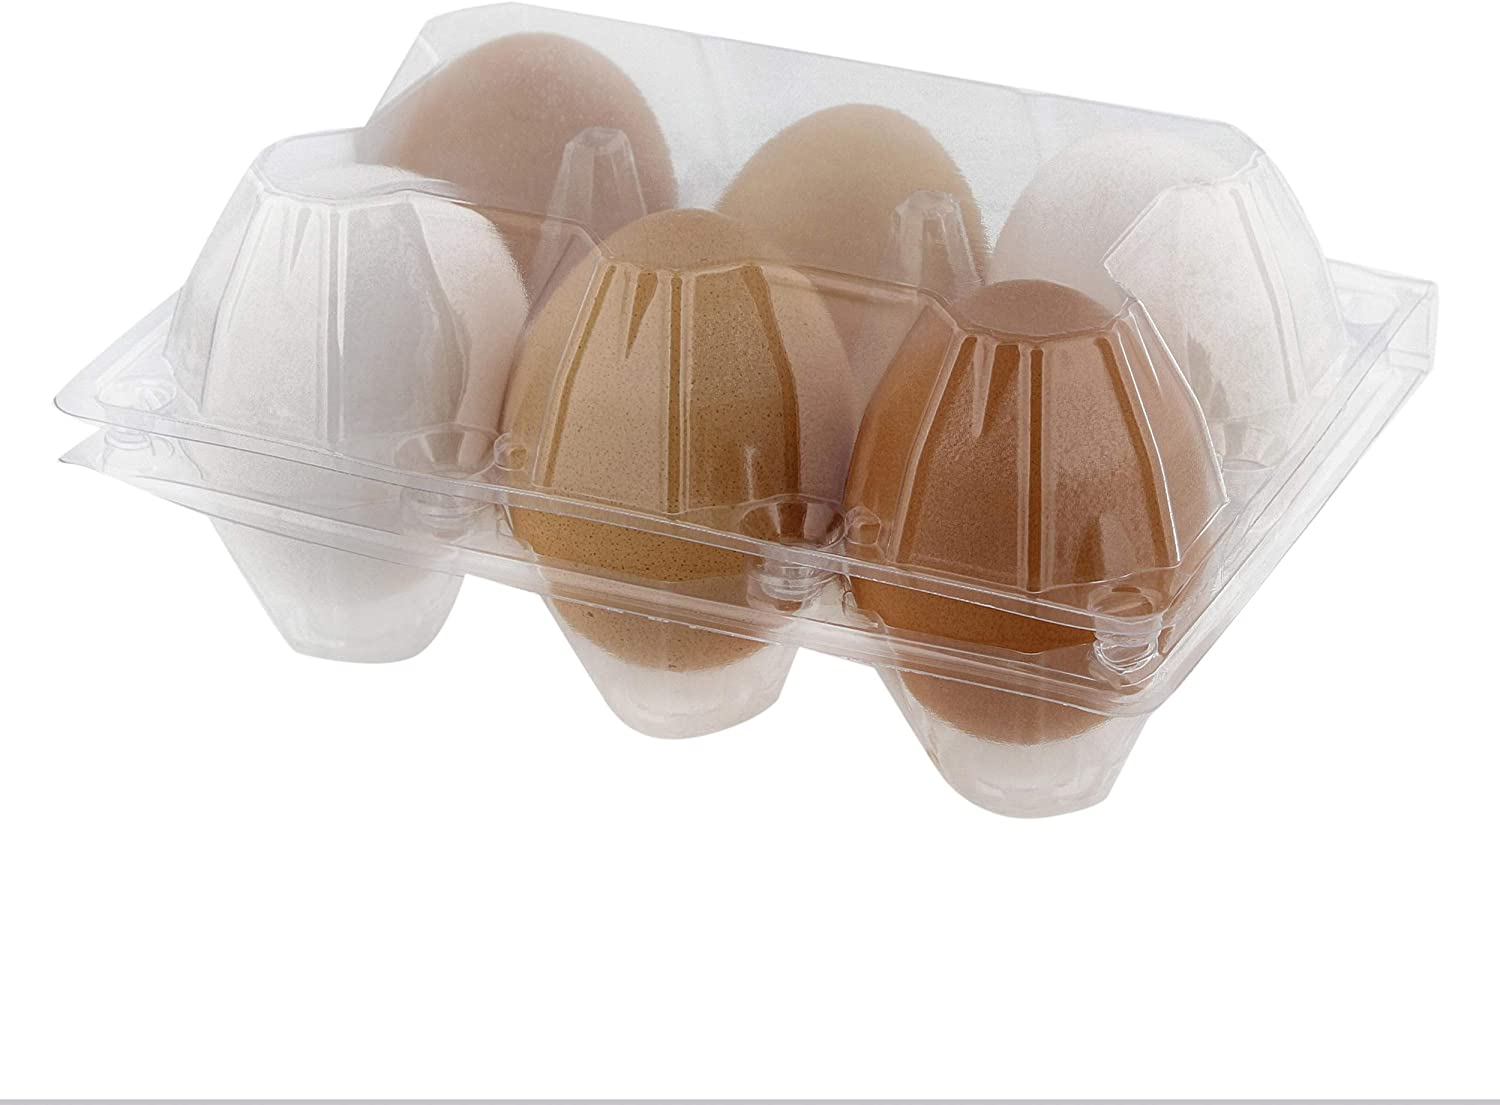 Rural365 Plastic Egg Carton for 6 Eggs, 50ct - Reusable Chicken Egg Holder, Stackable Egg Storage Container with Lid